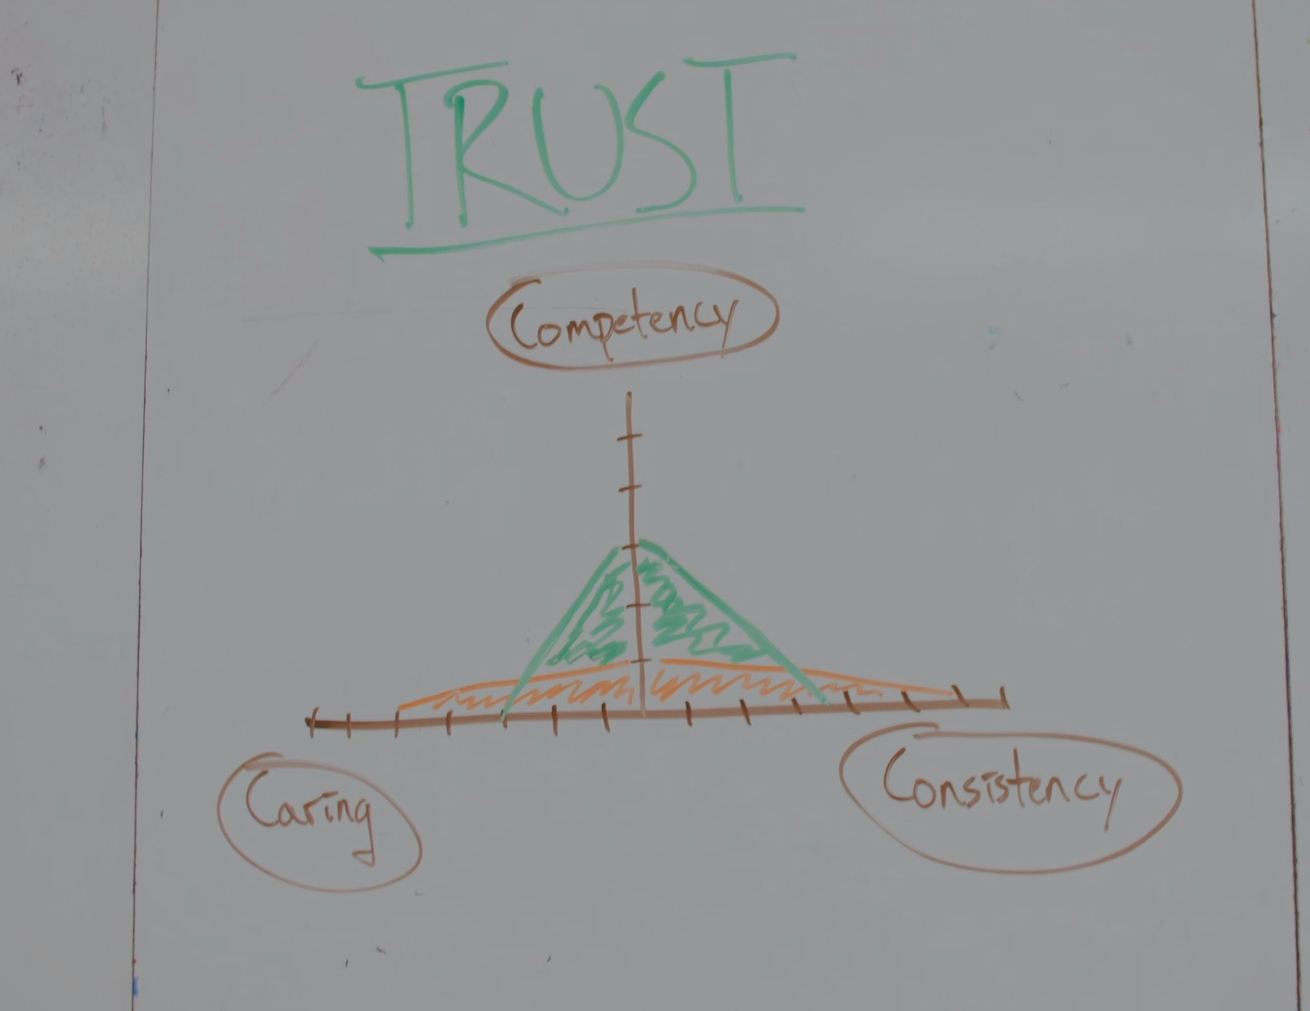 Trust and Coaching - The bigger the triangle, the more trust you have.  Notice that a balanced triangle (green) is bigger than one that is big in one or two areas (orange). You need all three characteristics to build more and more trust.